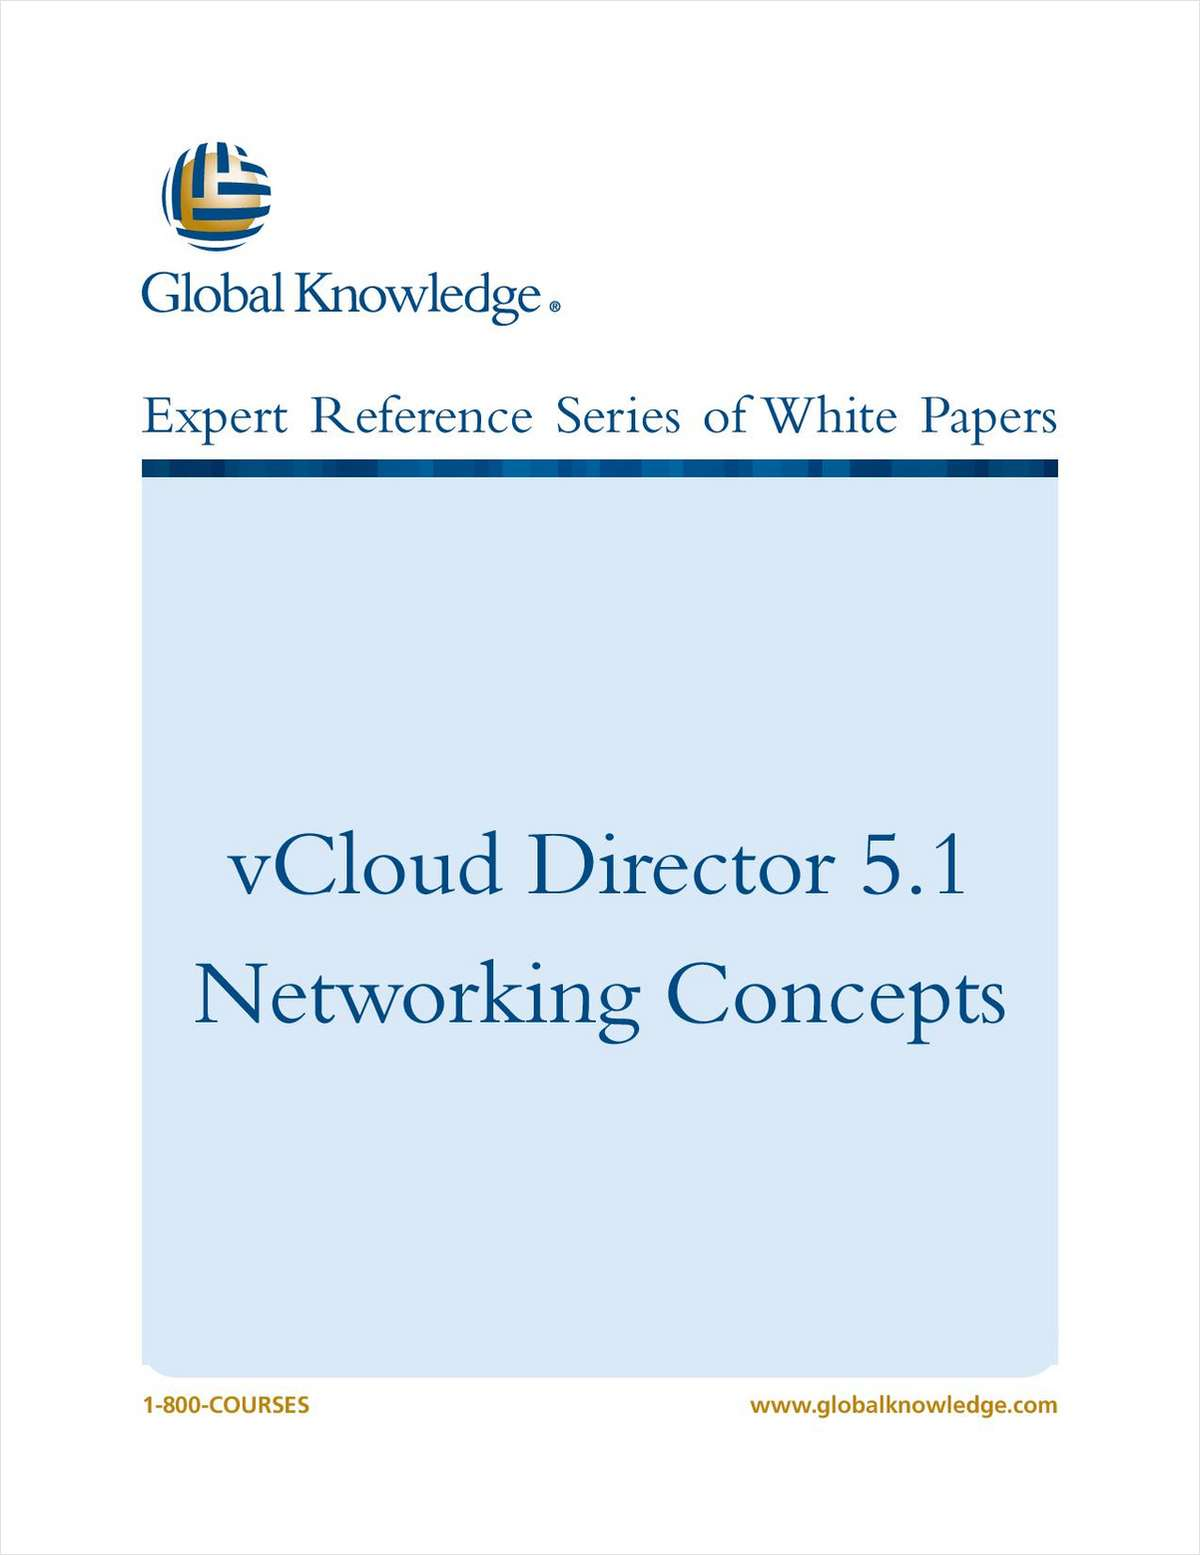 vCloud Director 5.1 Networking Concepts